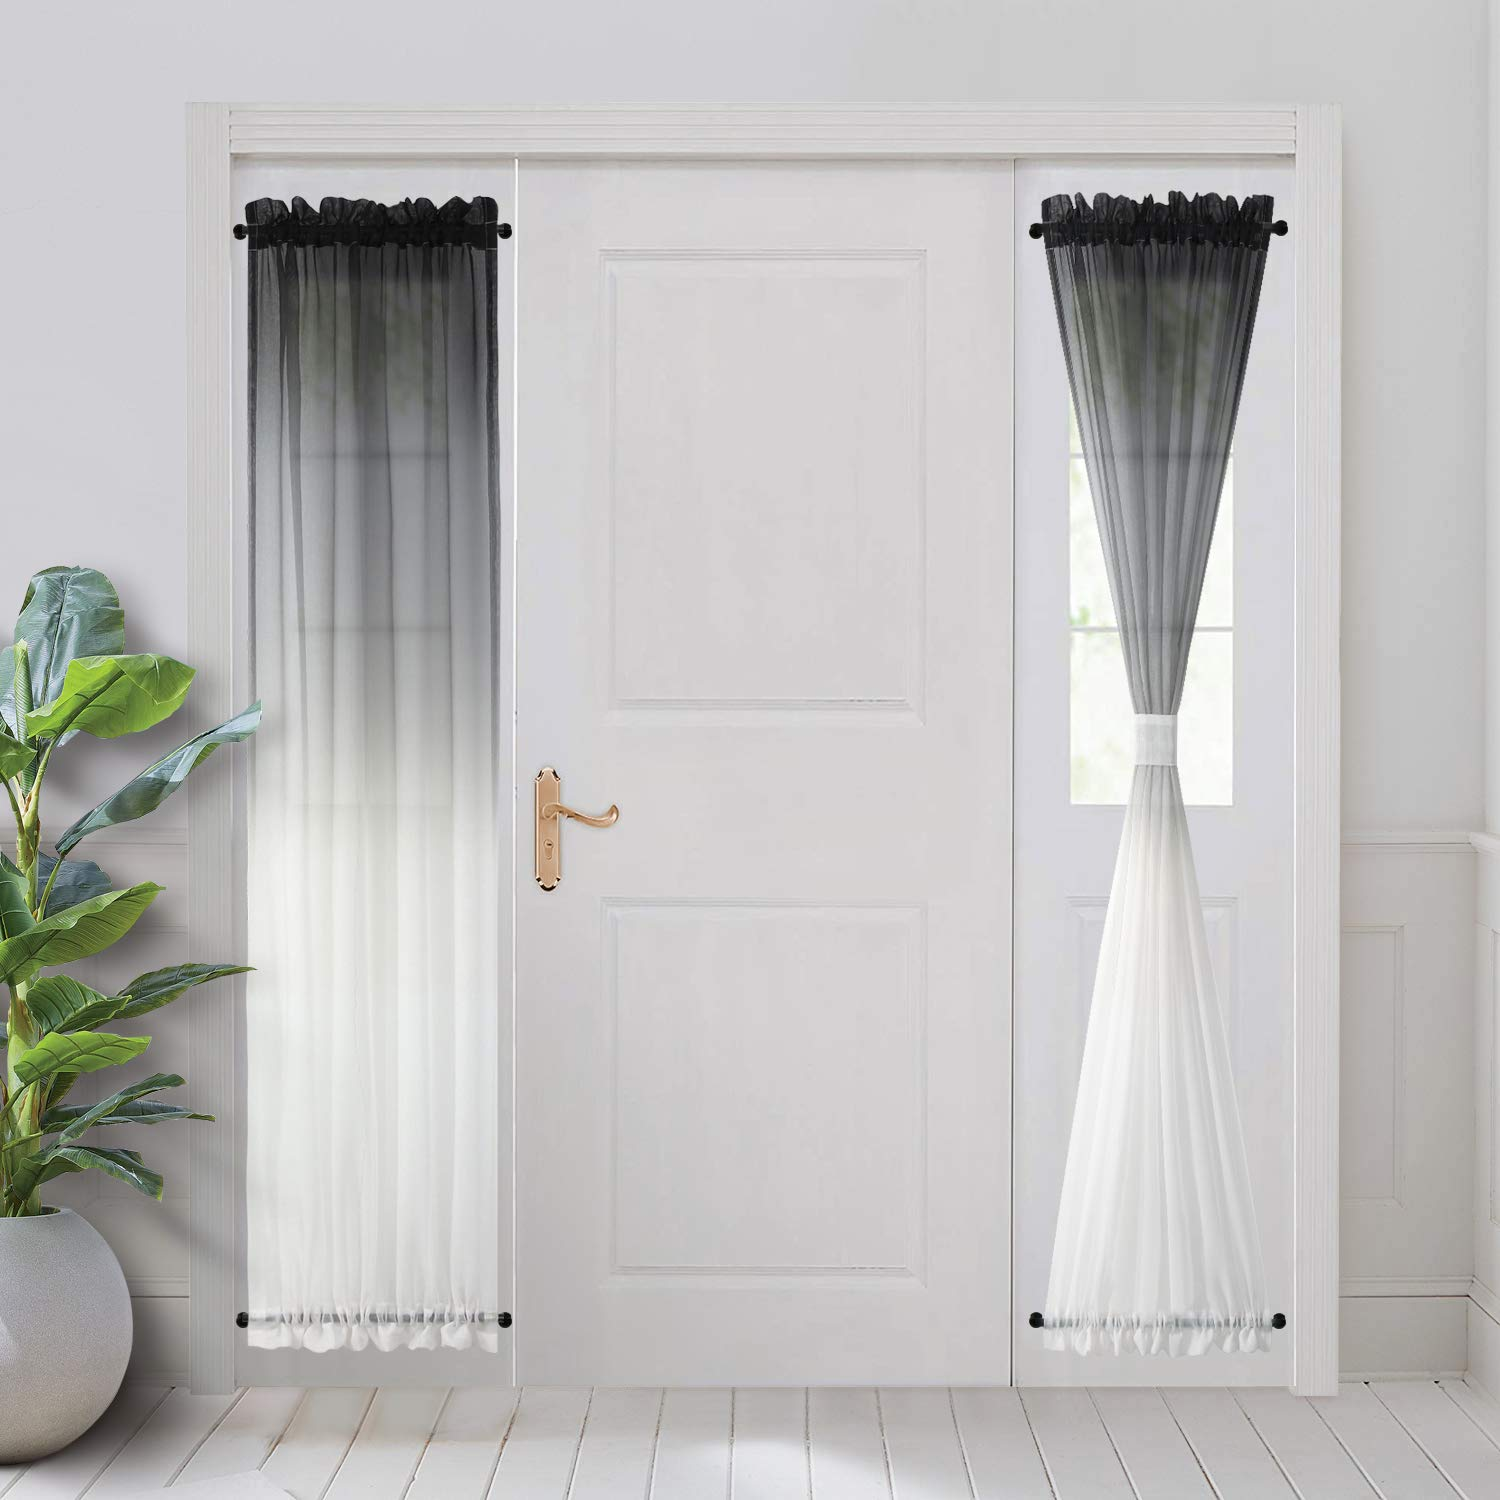 bgment ombre french door curtains rod pocket faux linen sheer sidelight drapes with 2 tie backs for door window set of 2 panels each 30 x 72 inch